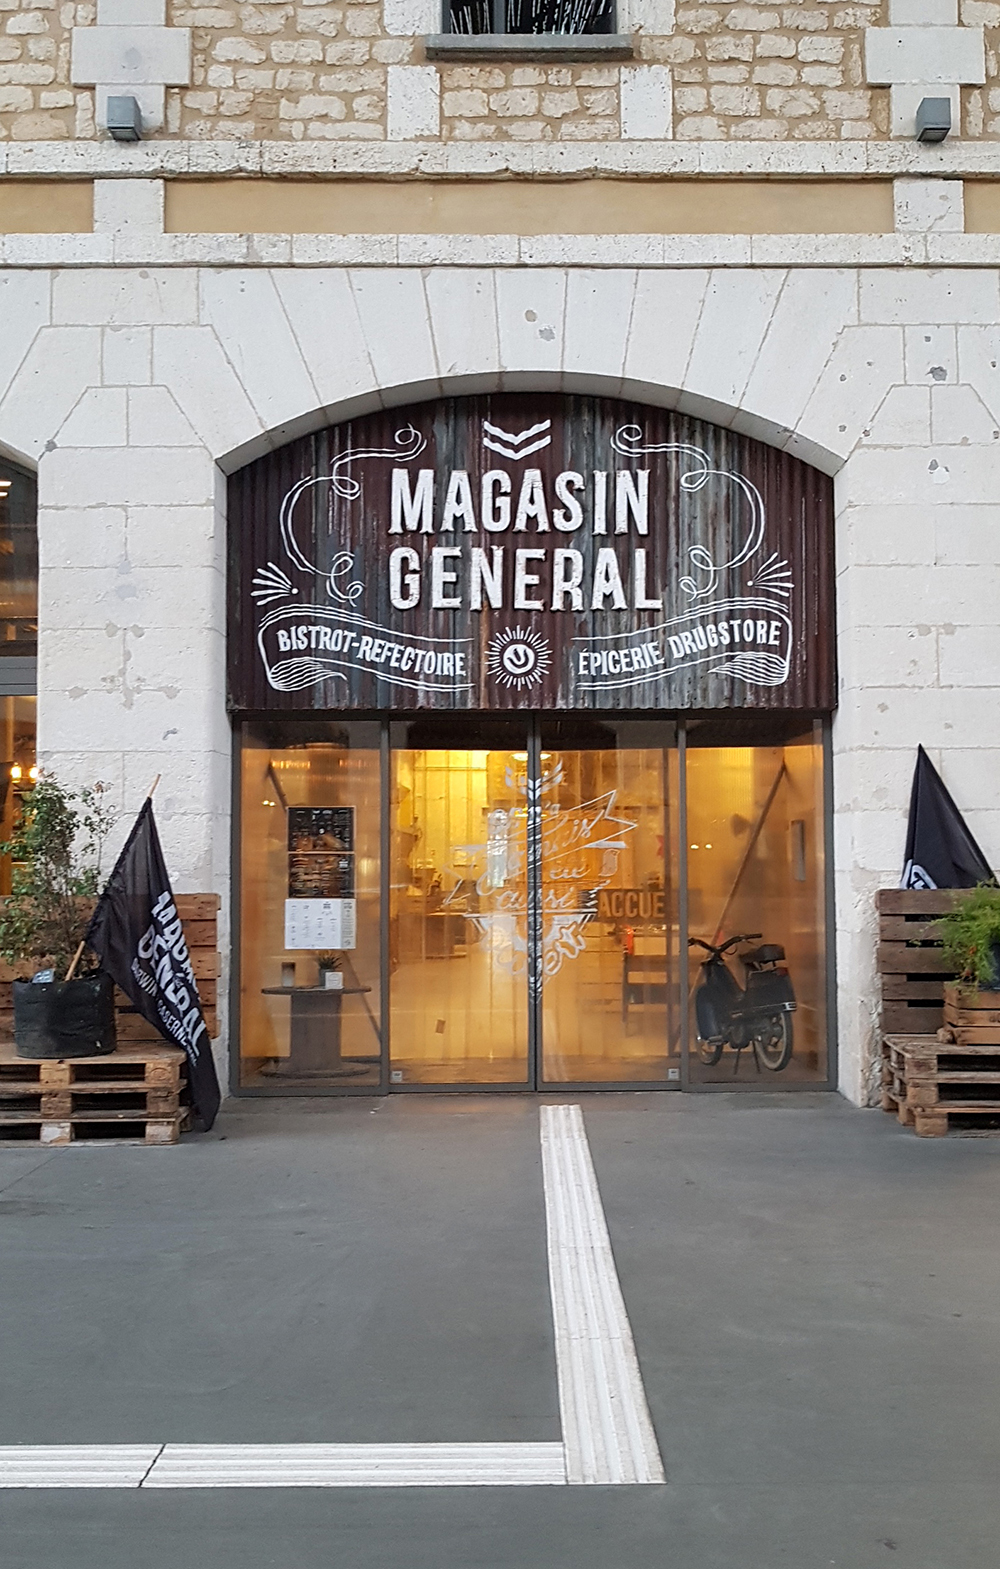 Magasin General, Darwin eco-systeme, Bordeaux